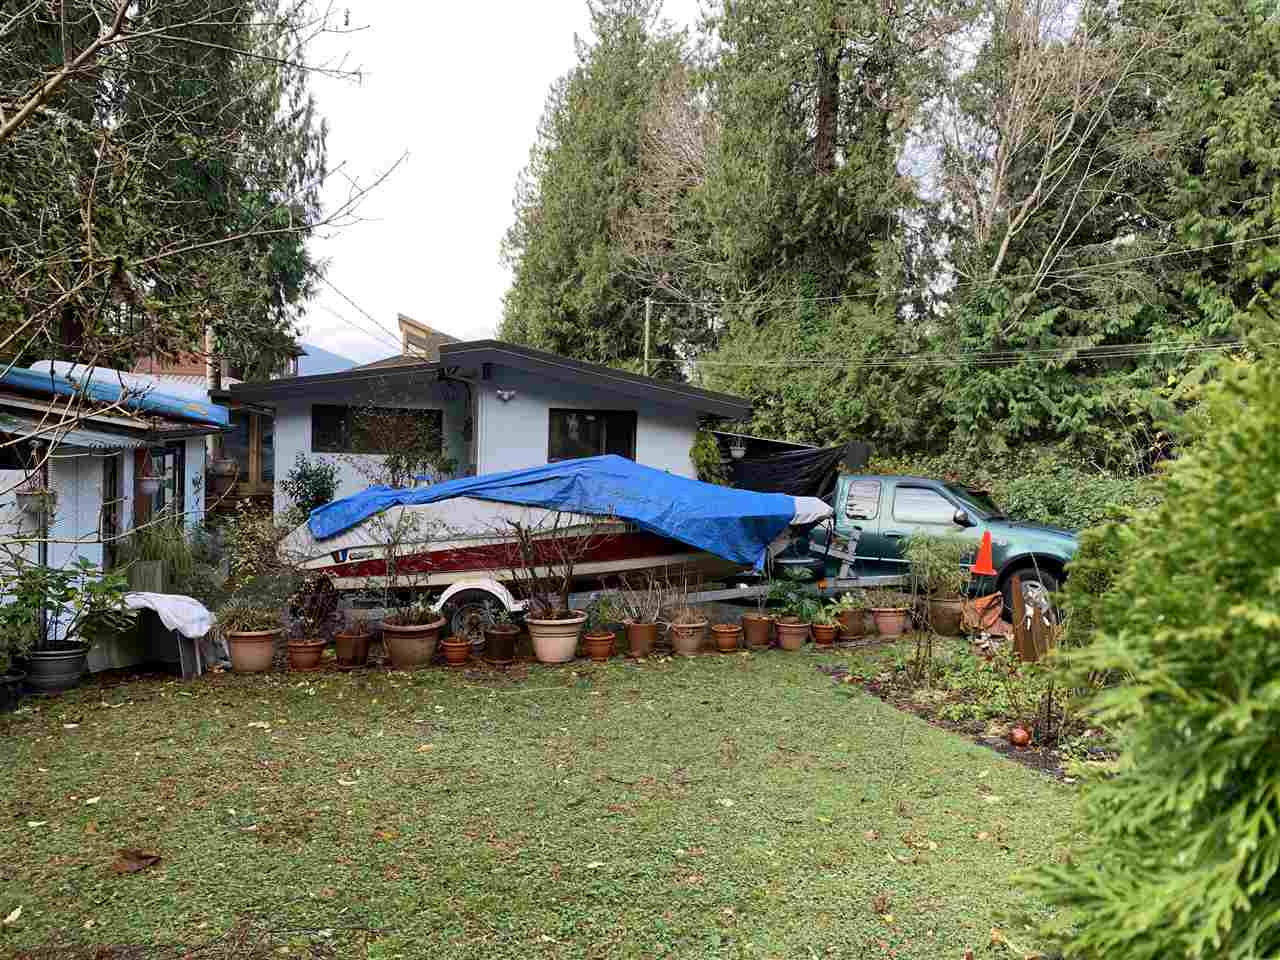 27 BRUNSWICK BEACH ROAD - Lions Bay House/Single Family for sale, 2 Bedrooms (R2518865) - #16